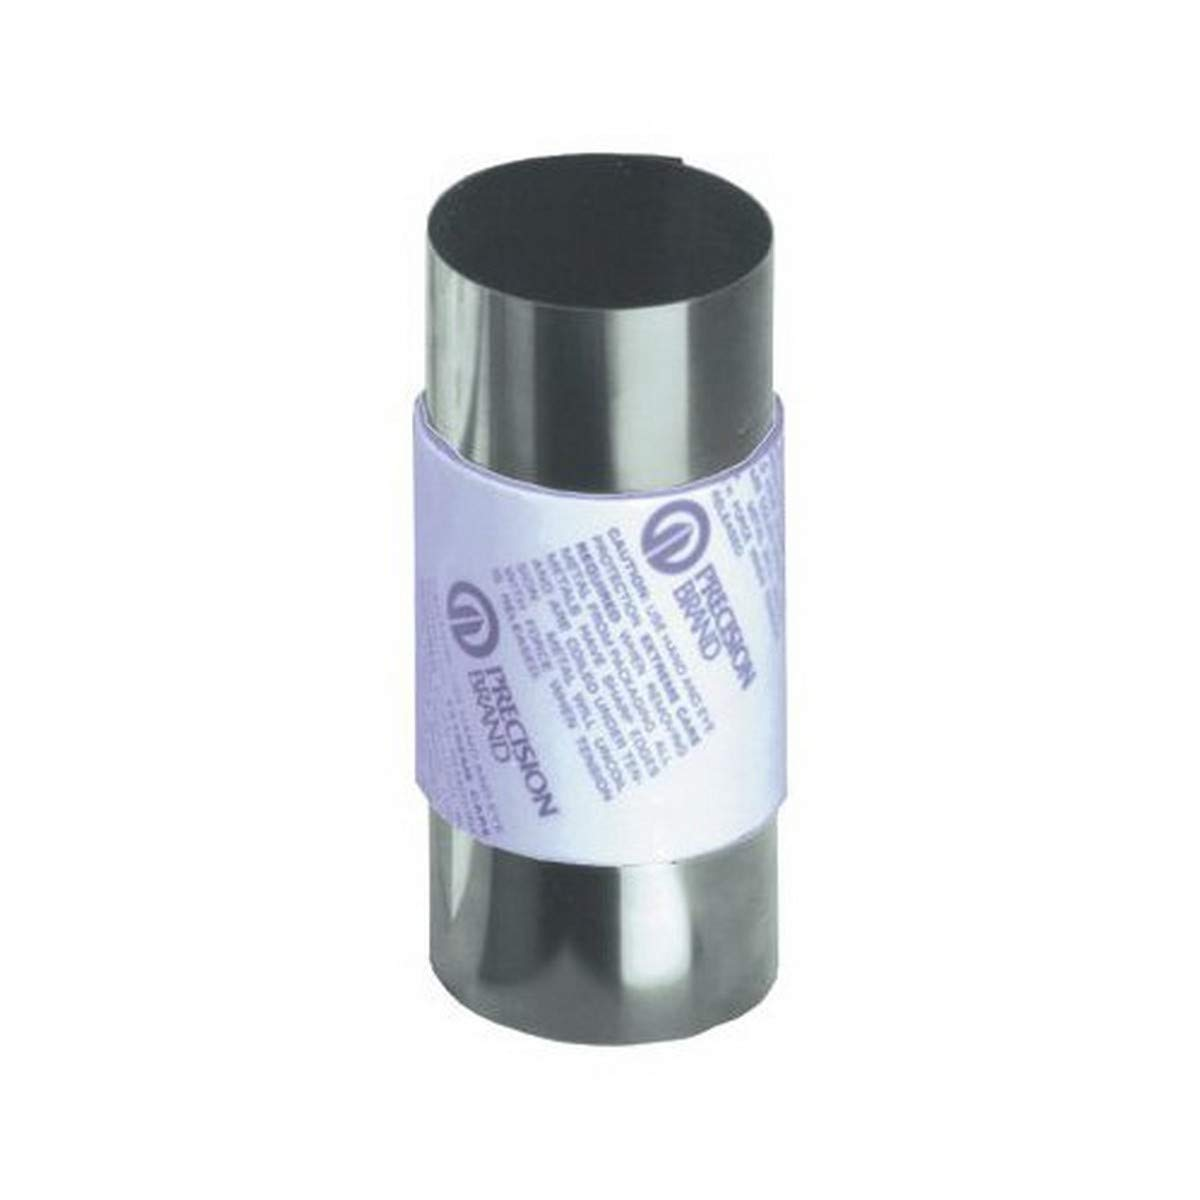 Cold Rolled Precision Brand 039-22979 0.65 mm Steel Shim Stock 150 mm X 1.25M Roll Full Hard 302 Stainless Steel